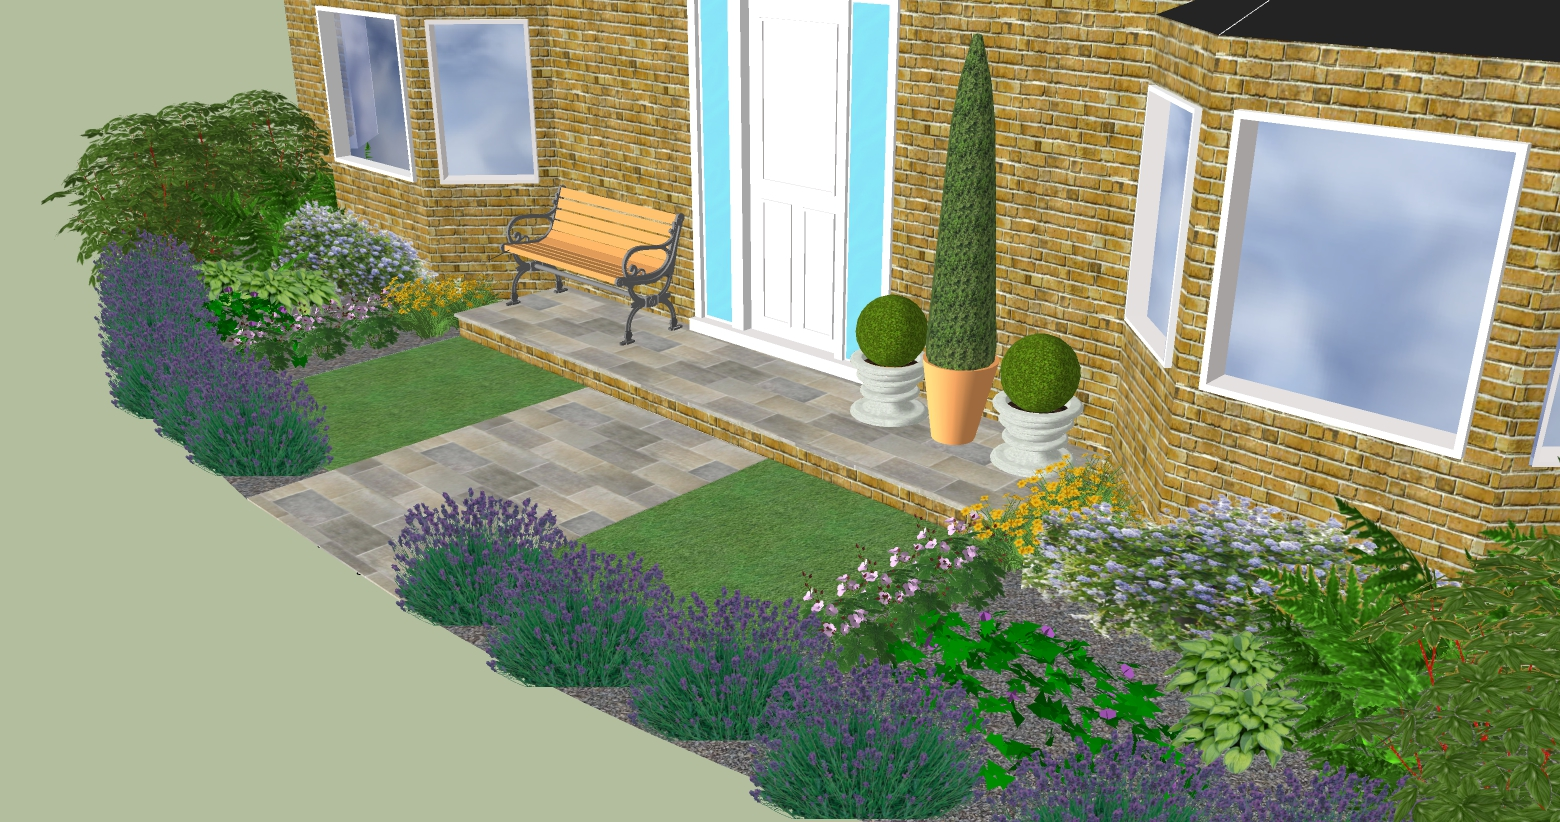 3D Drawing Of The Garden Design